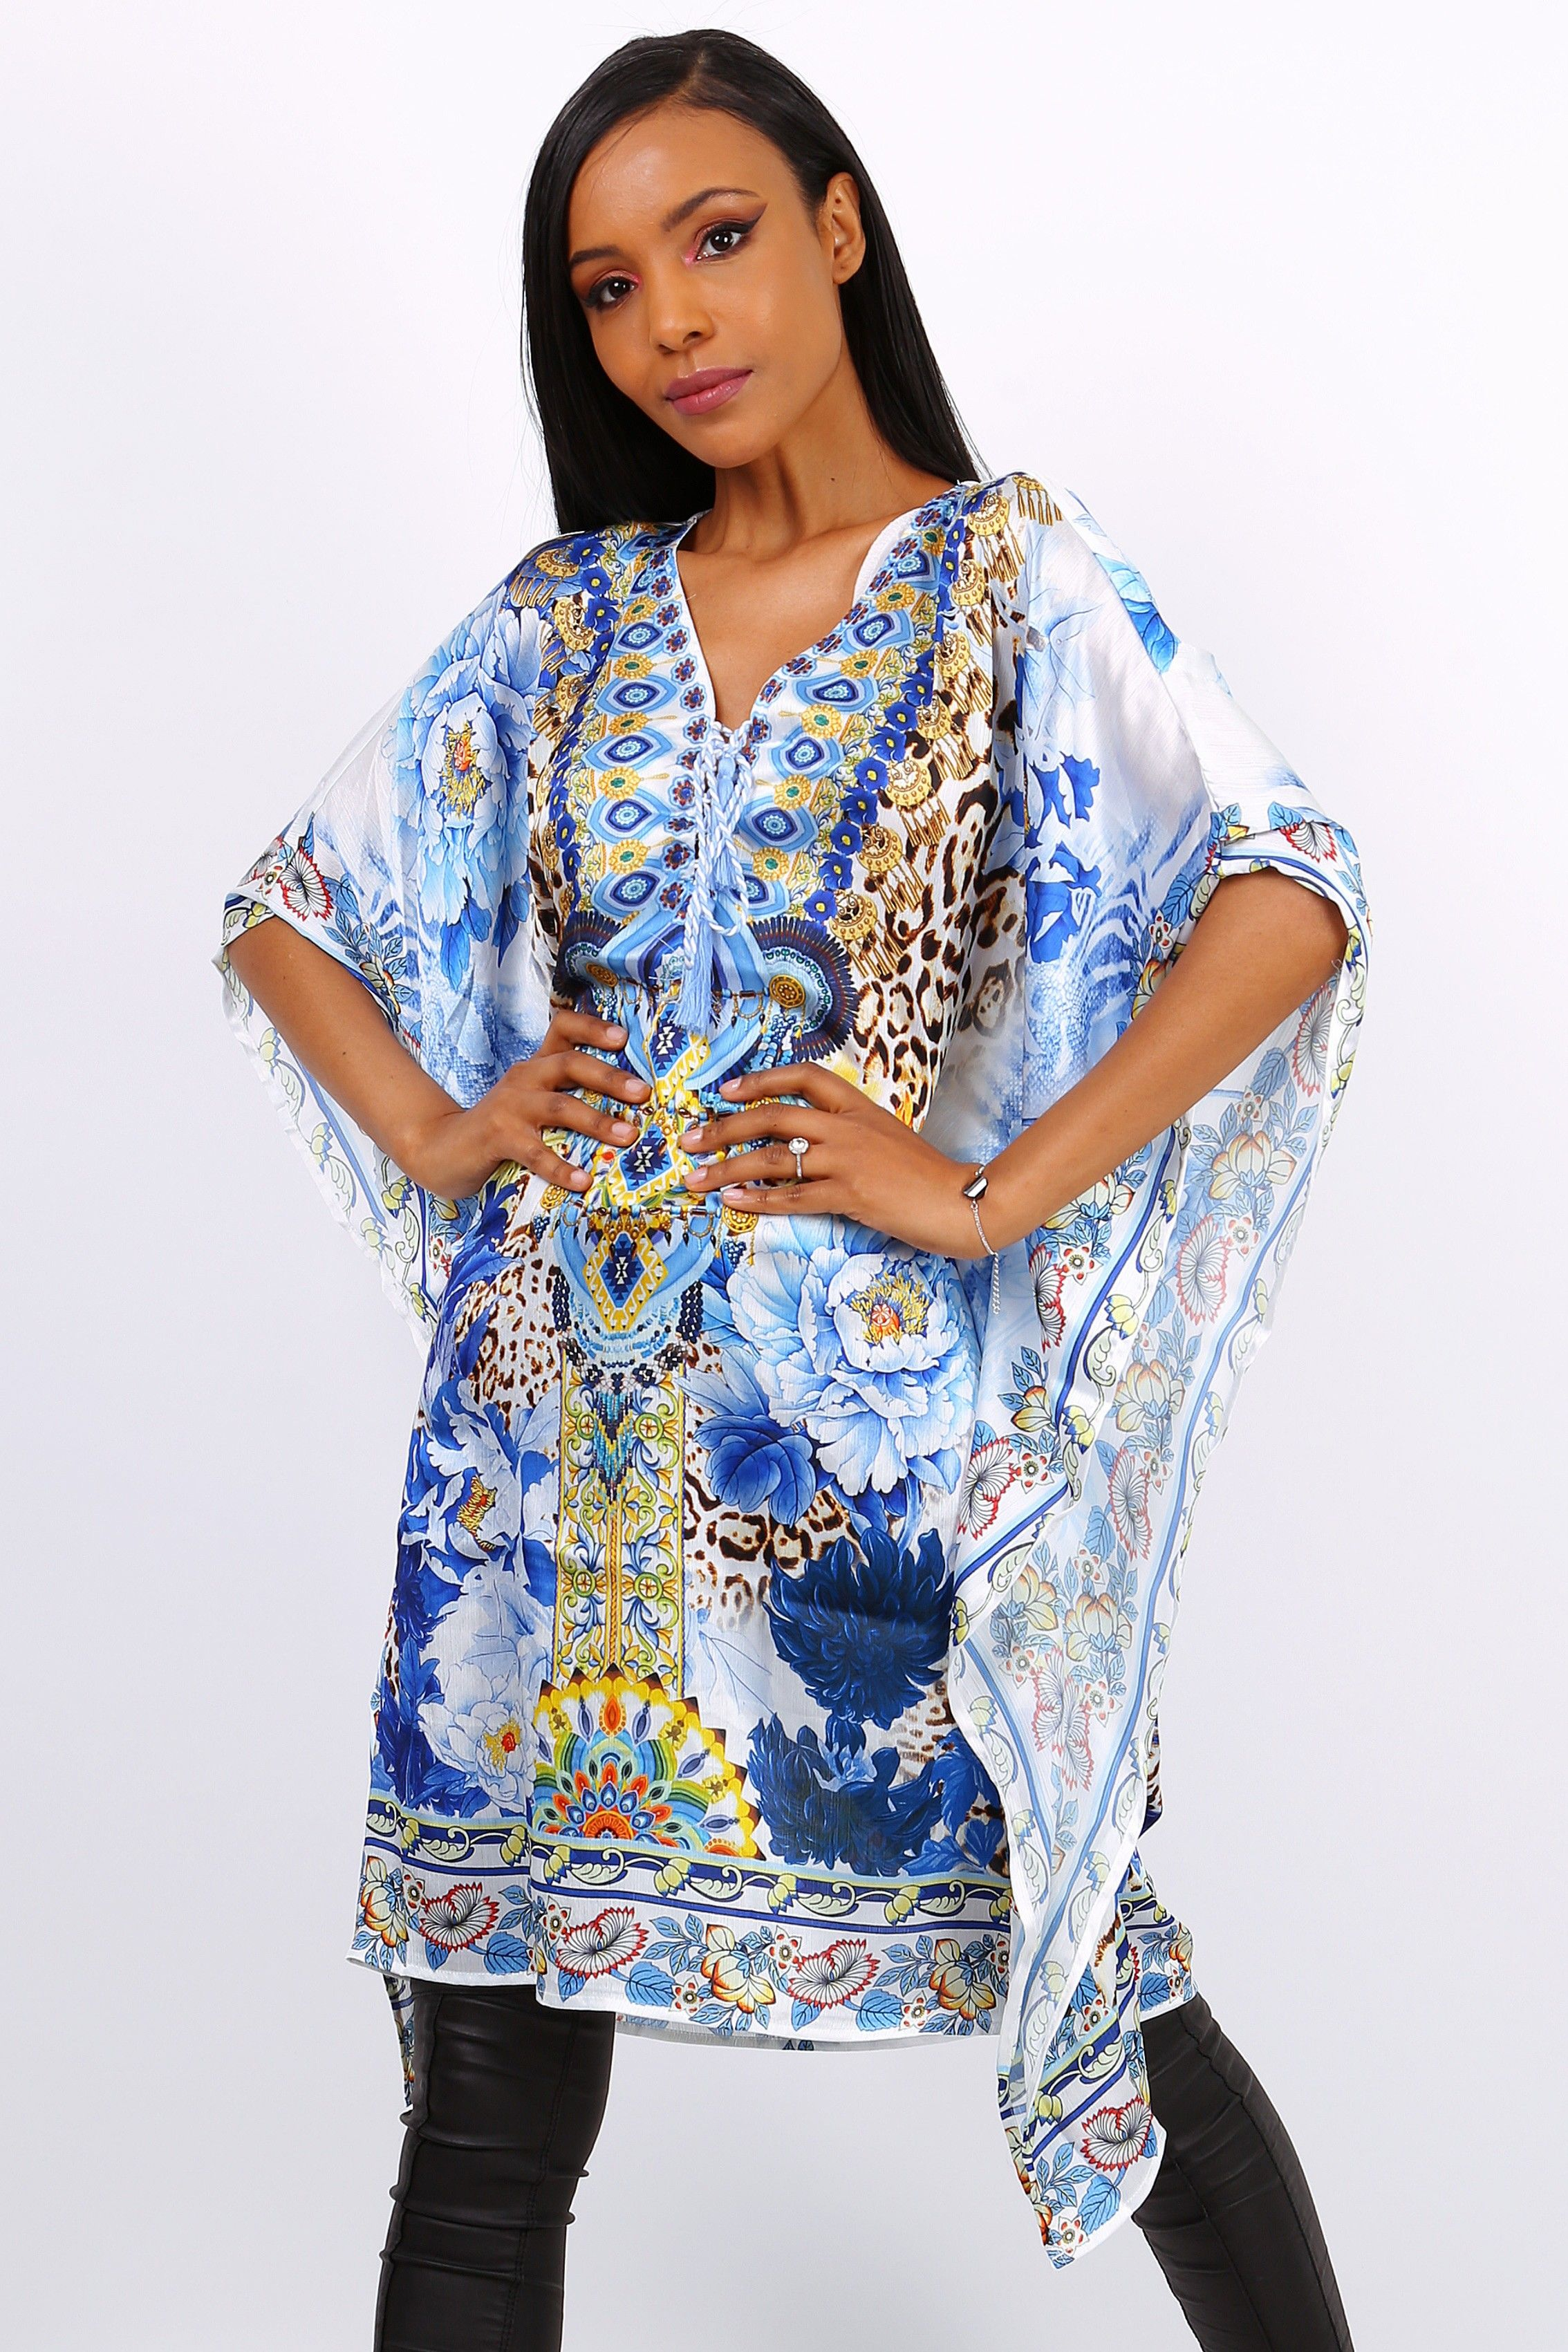 Silk Feel Blue & White Print Kaftan Top S/M